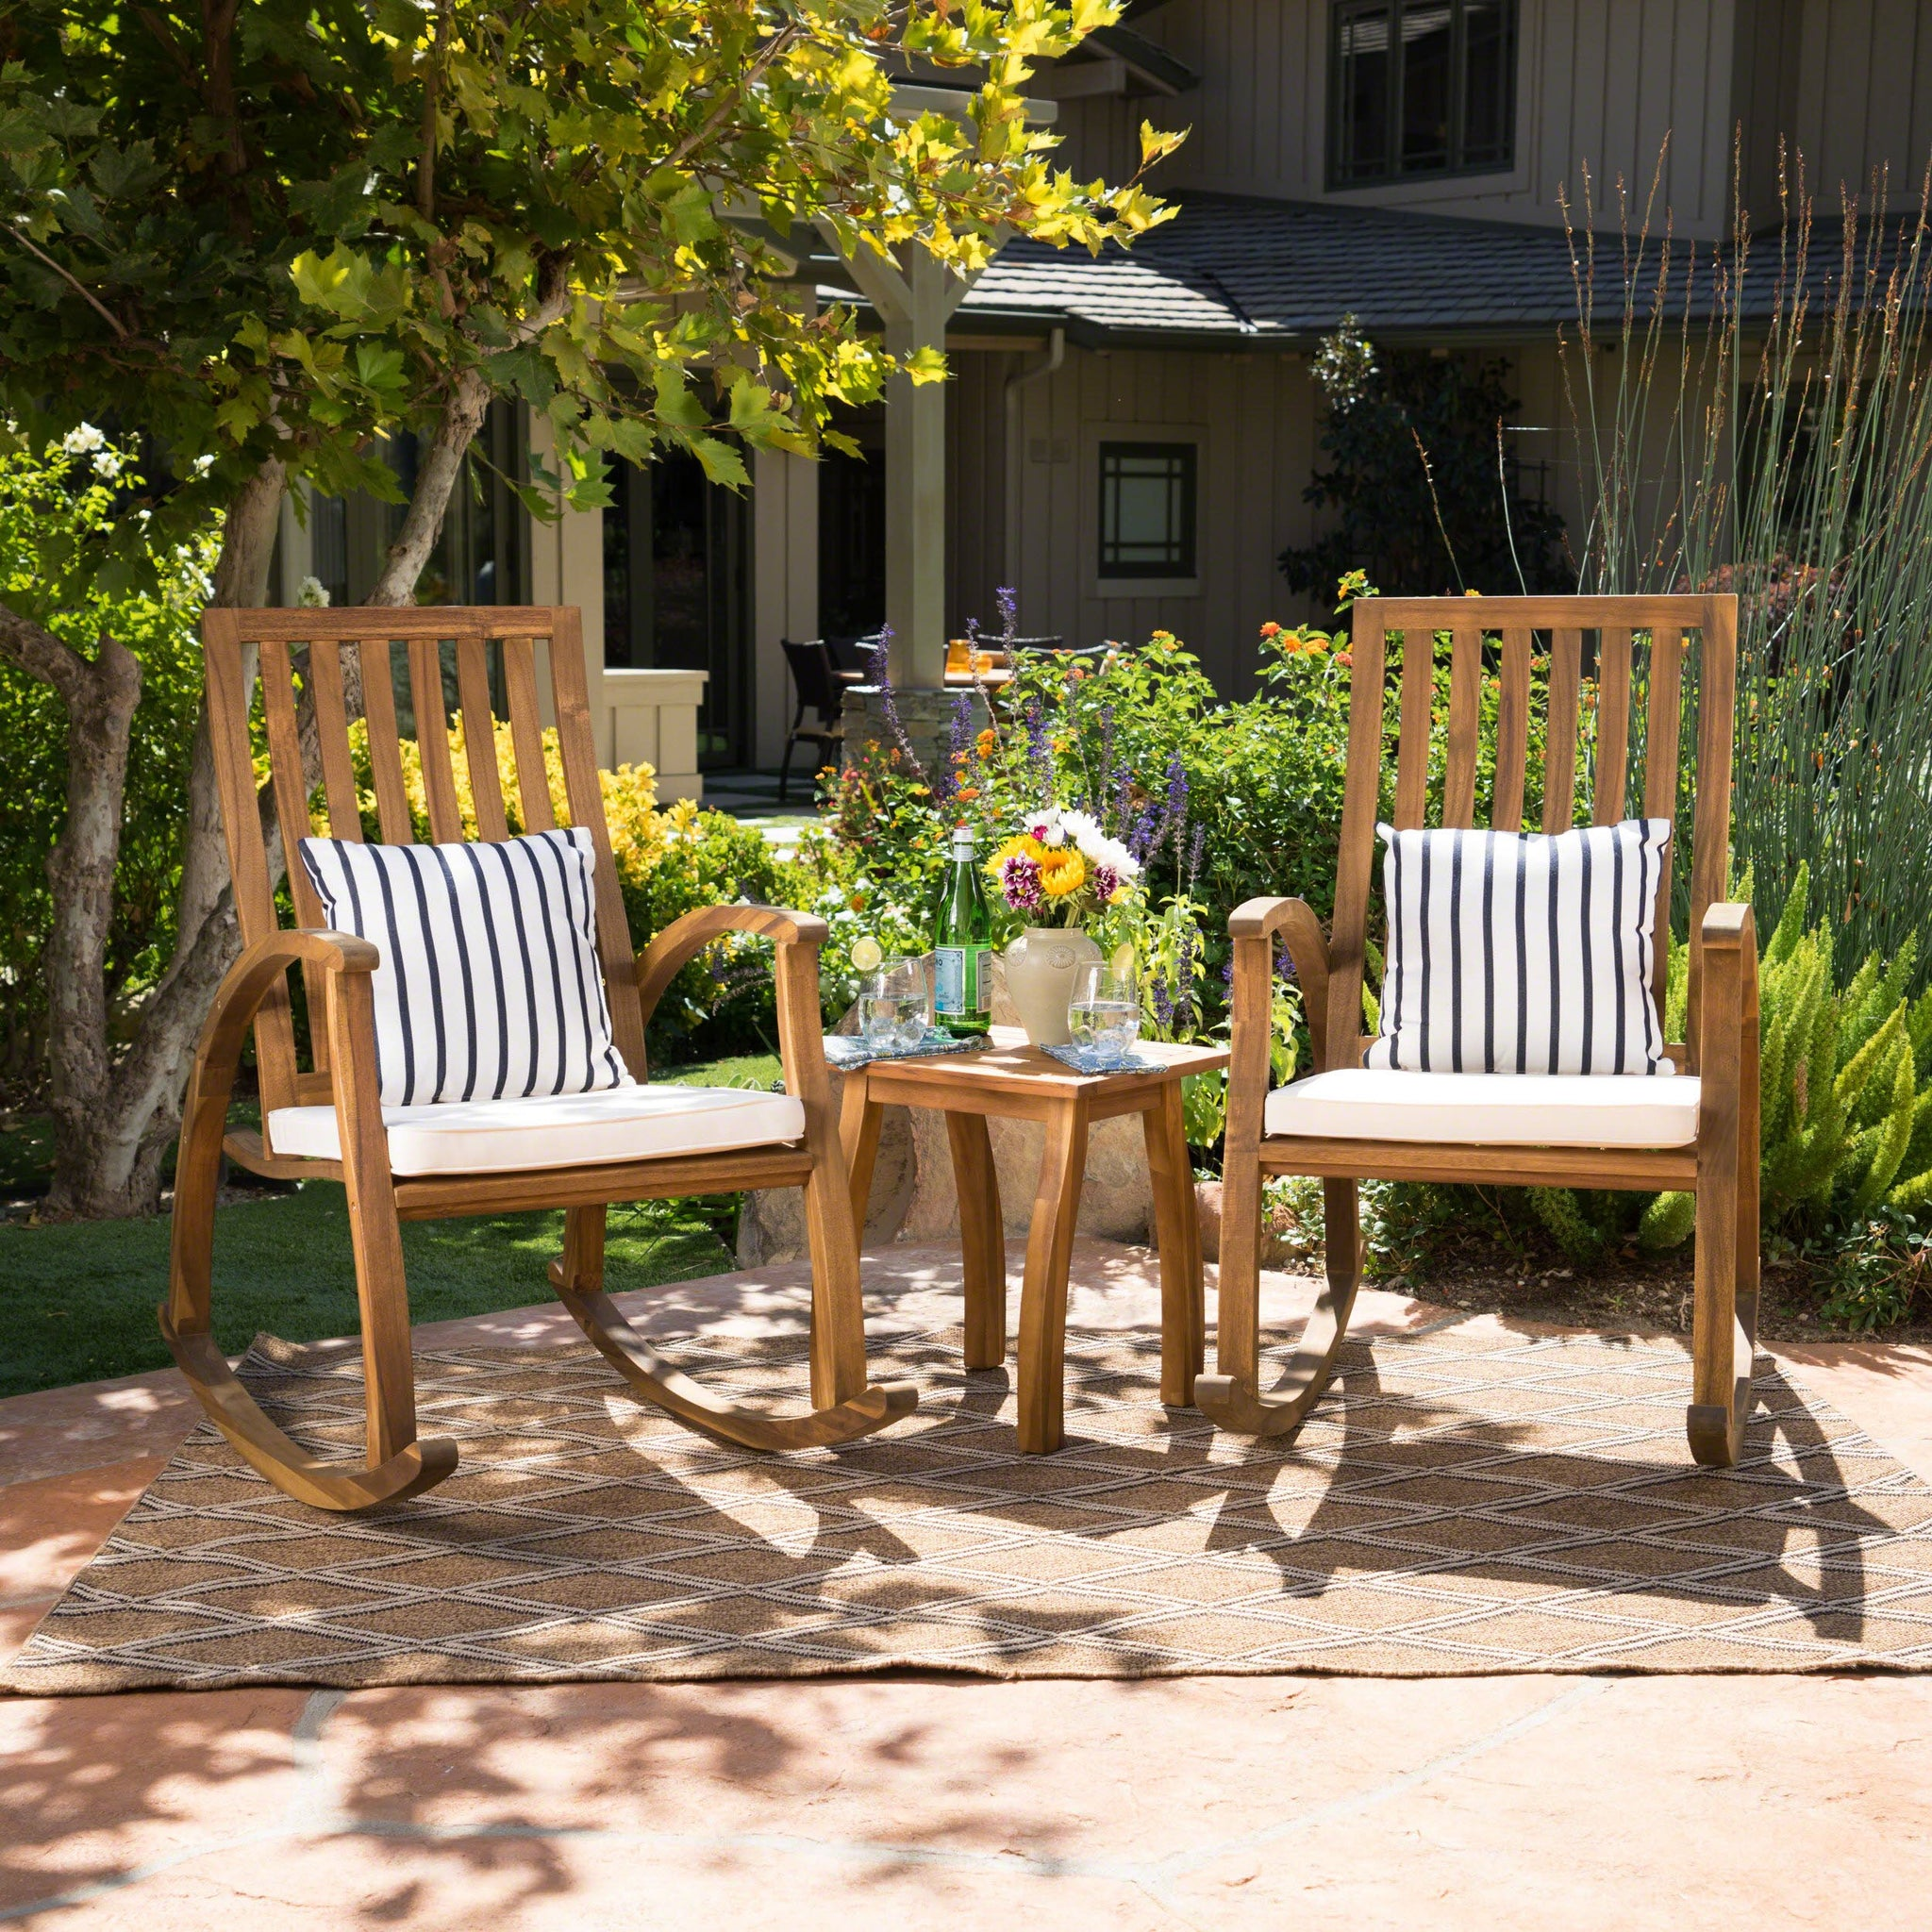 Cavalier Outdoor Natural Stained Acacia Wood Rocking Chair Chat Set With Teak Finished Table And Water Resistant Cushions